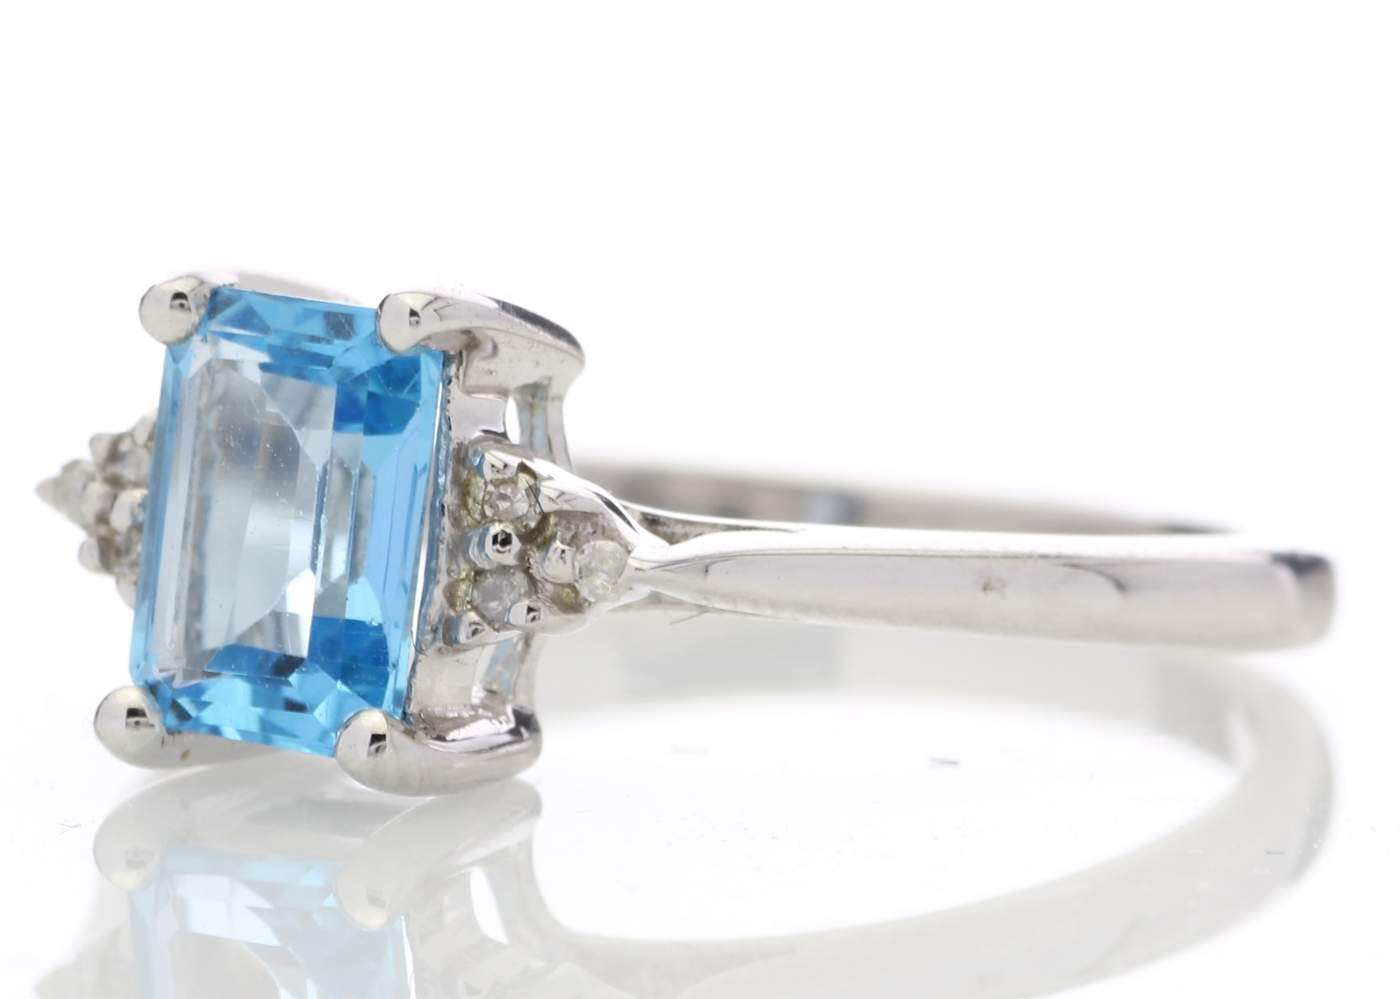 9ct White Gold Diamond And Blue Topaz Ring 0.03 Carats - Image 2 of 4